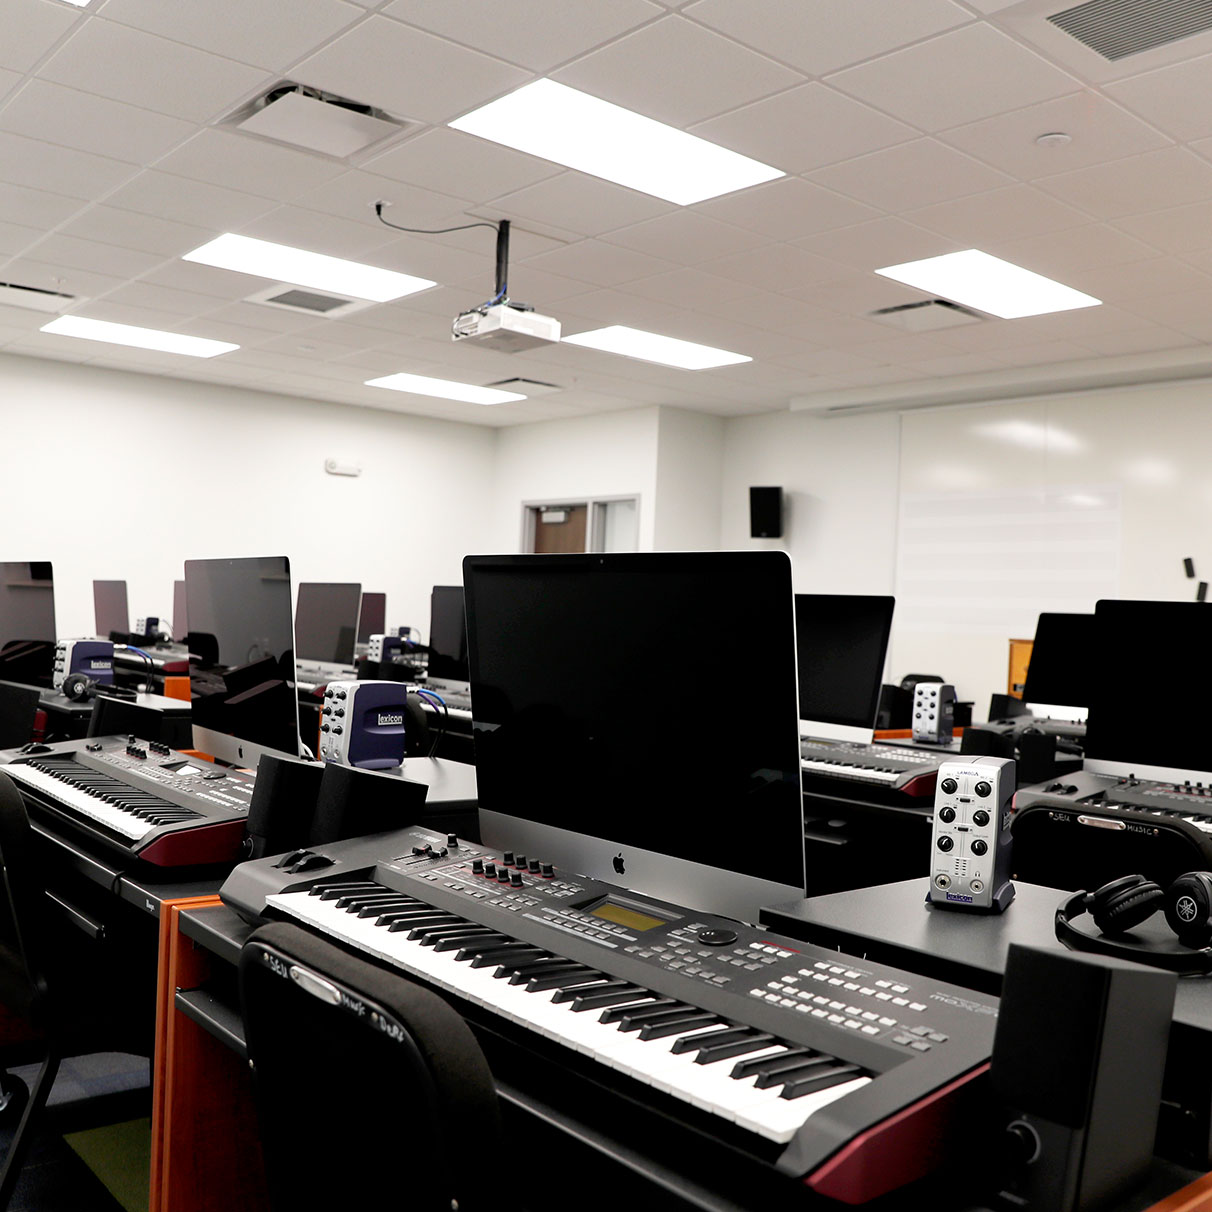 music lab filled with mac computers headphones keyboards and other equipment